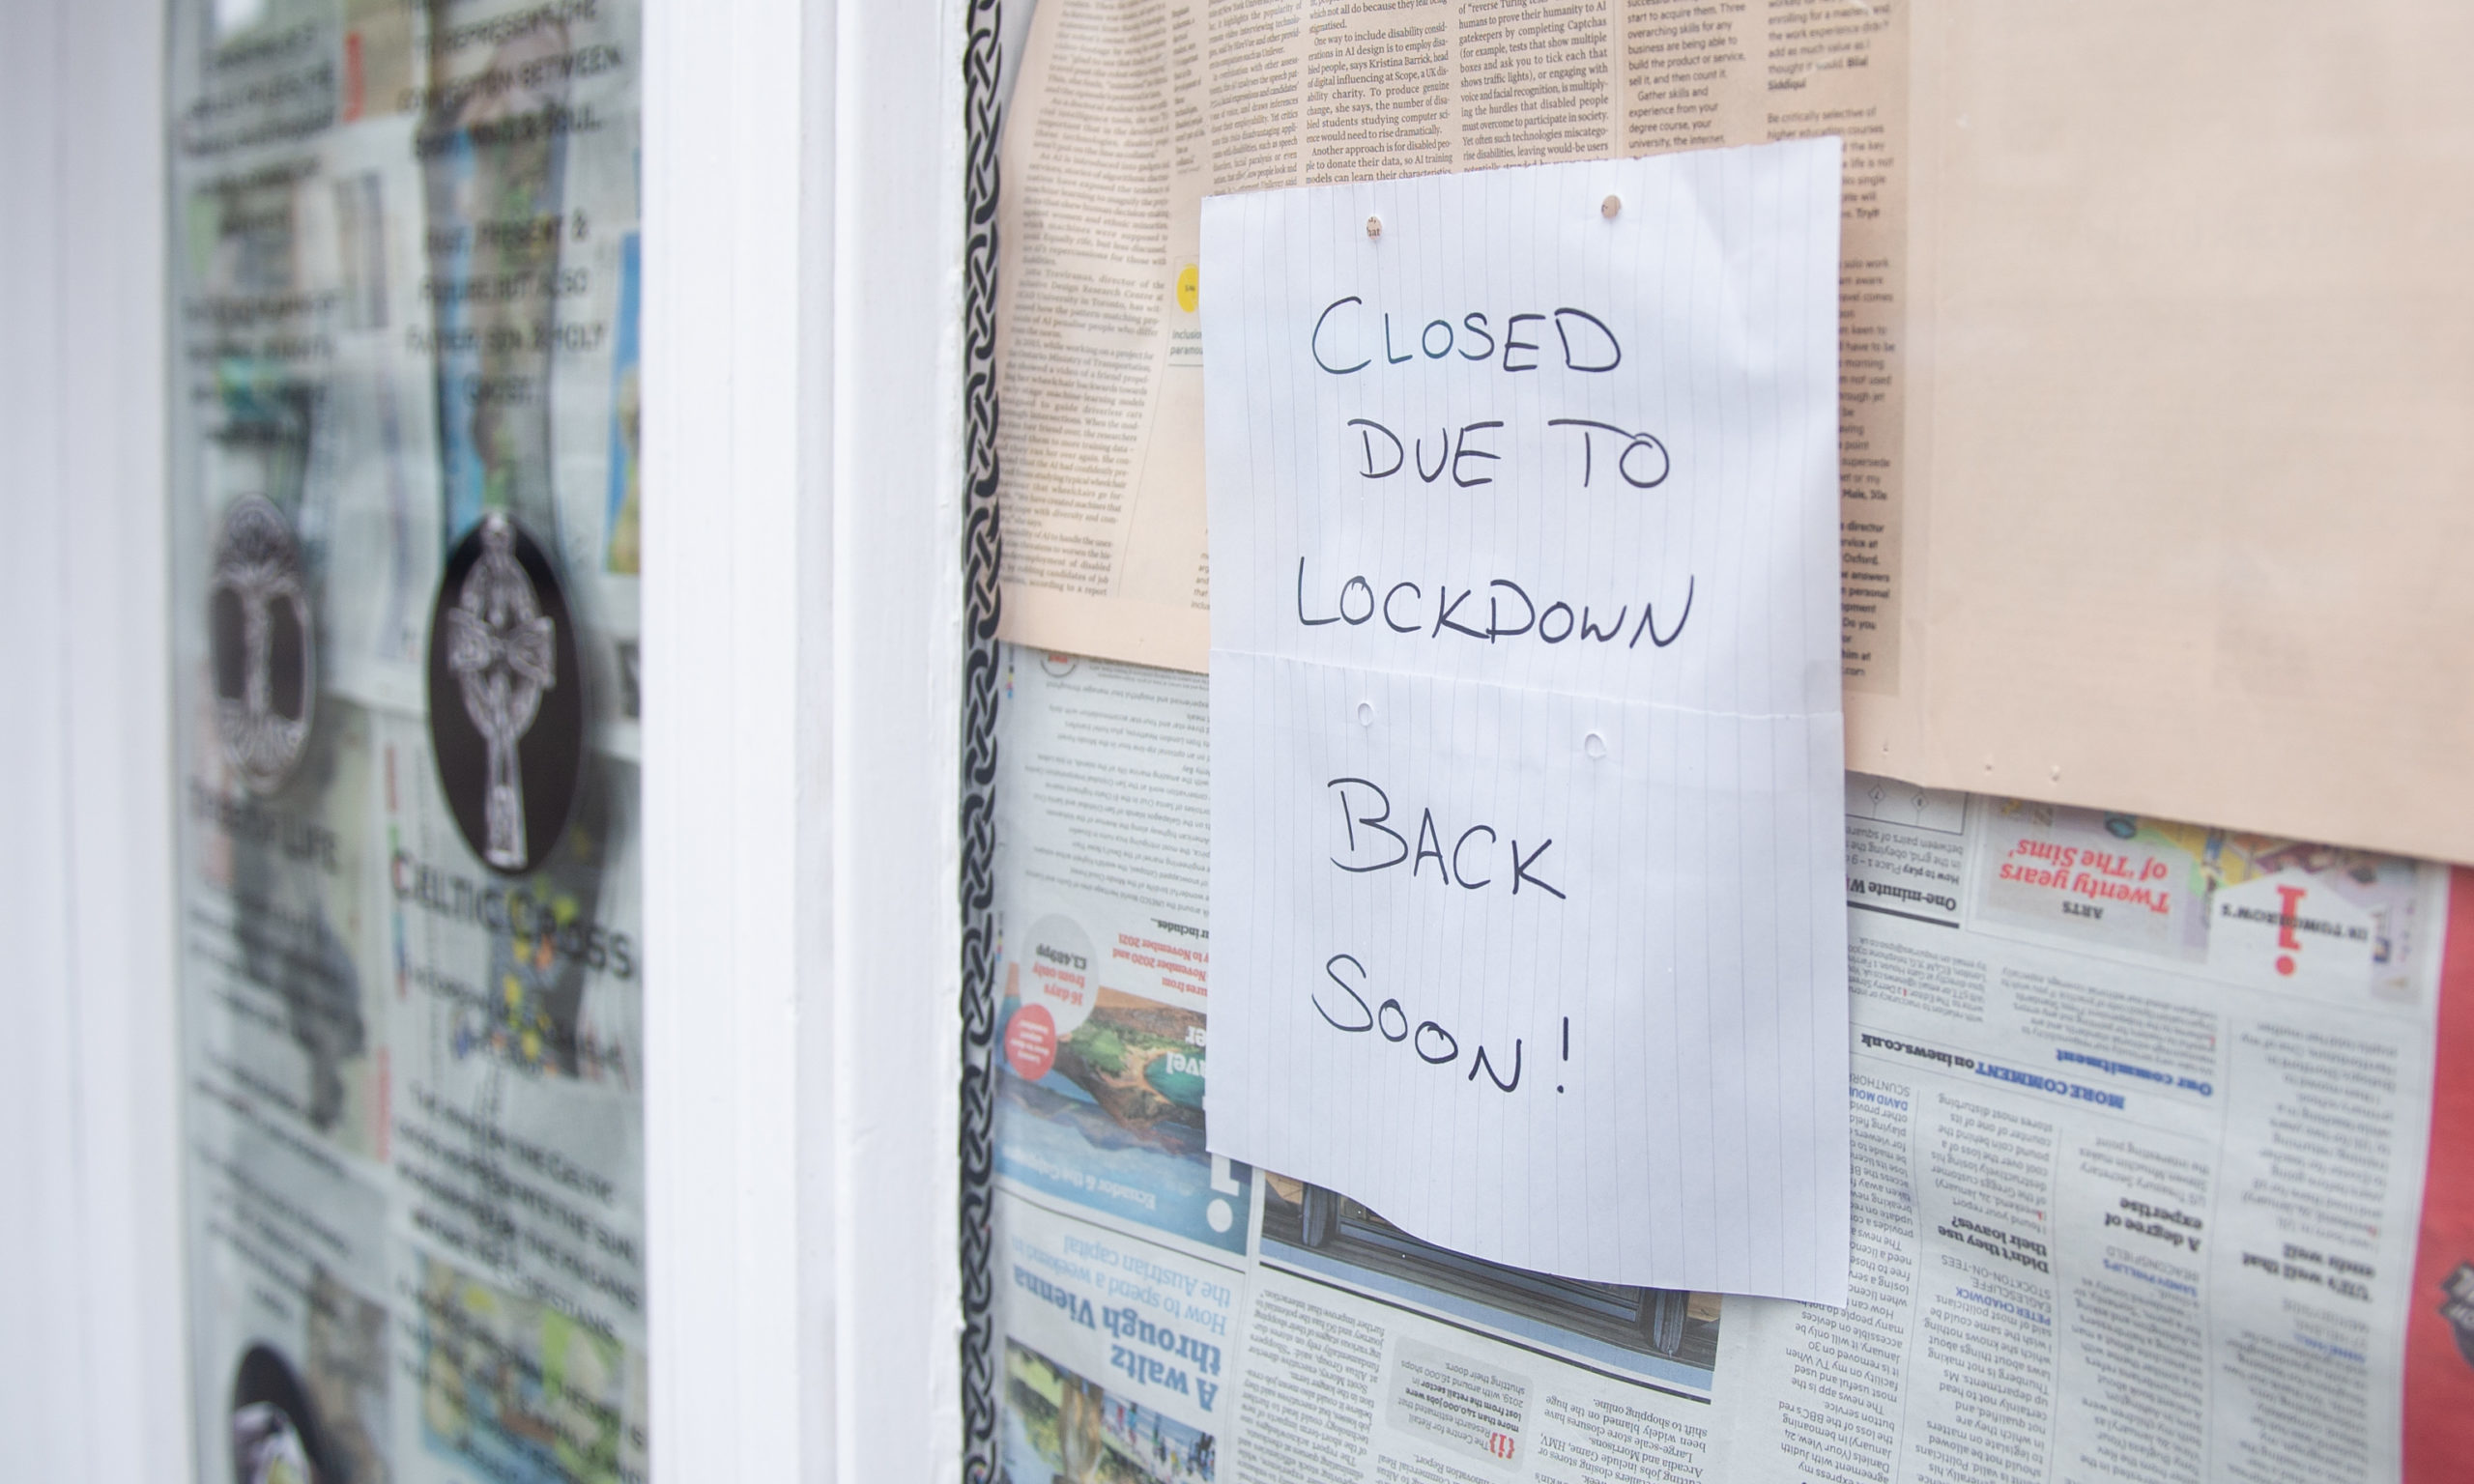 A Tayside shop closed due to the coronavirus lockdown.